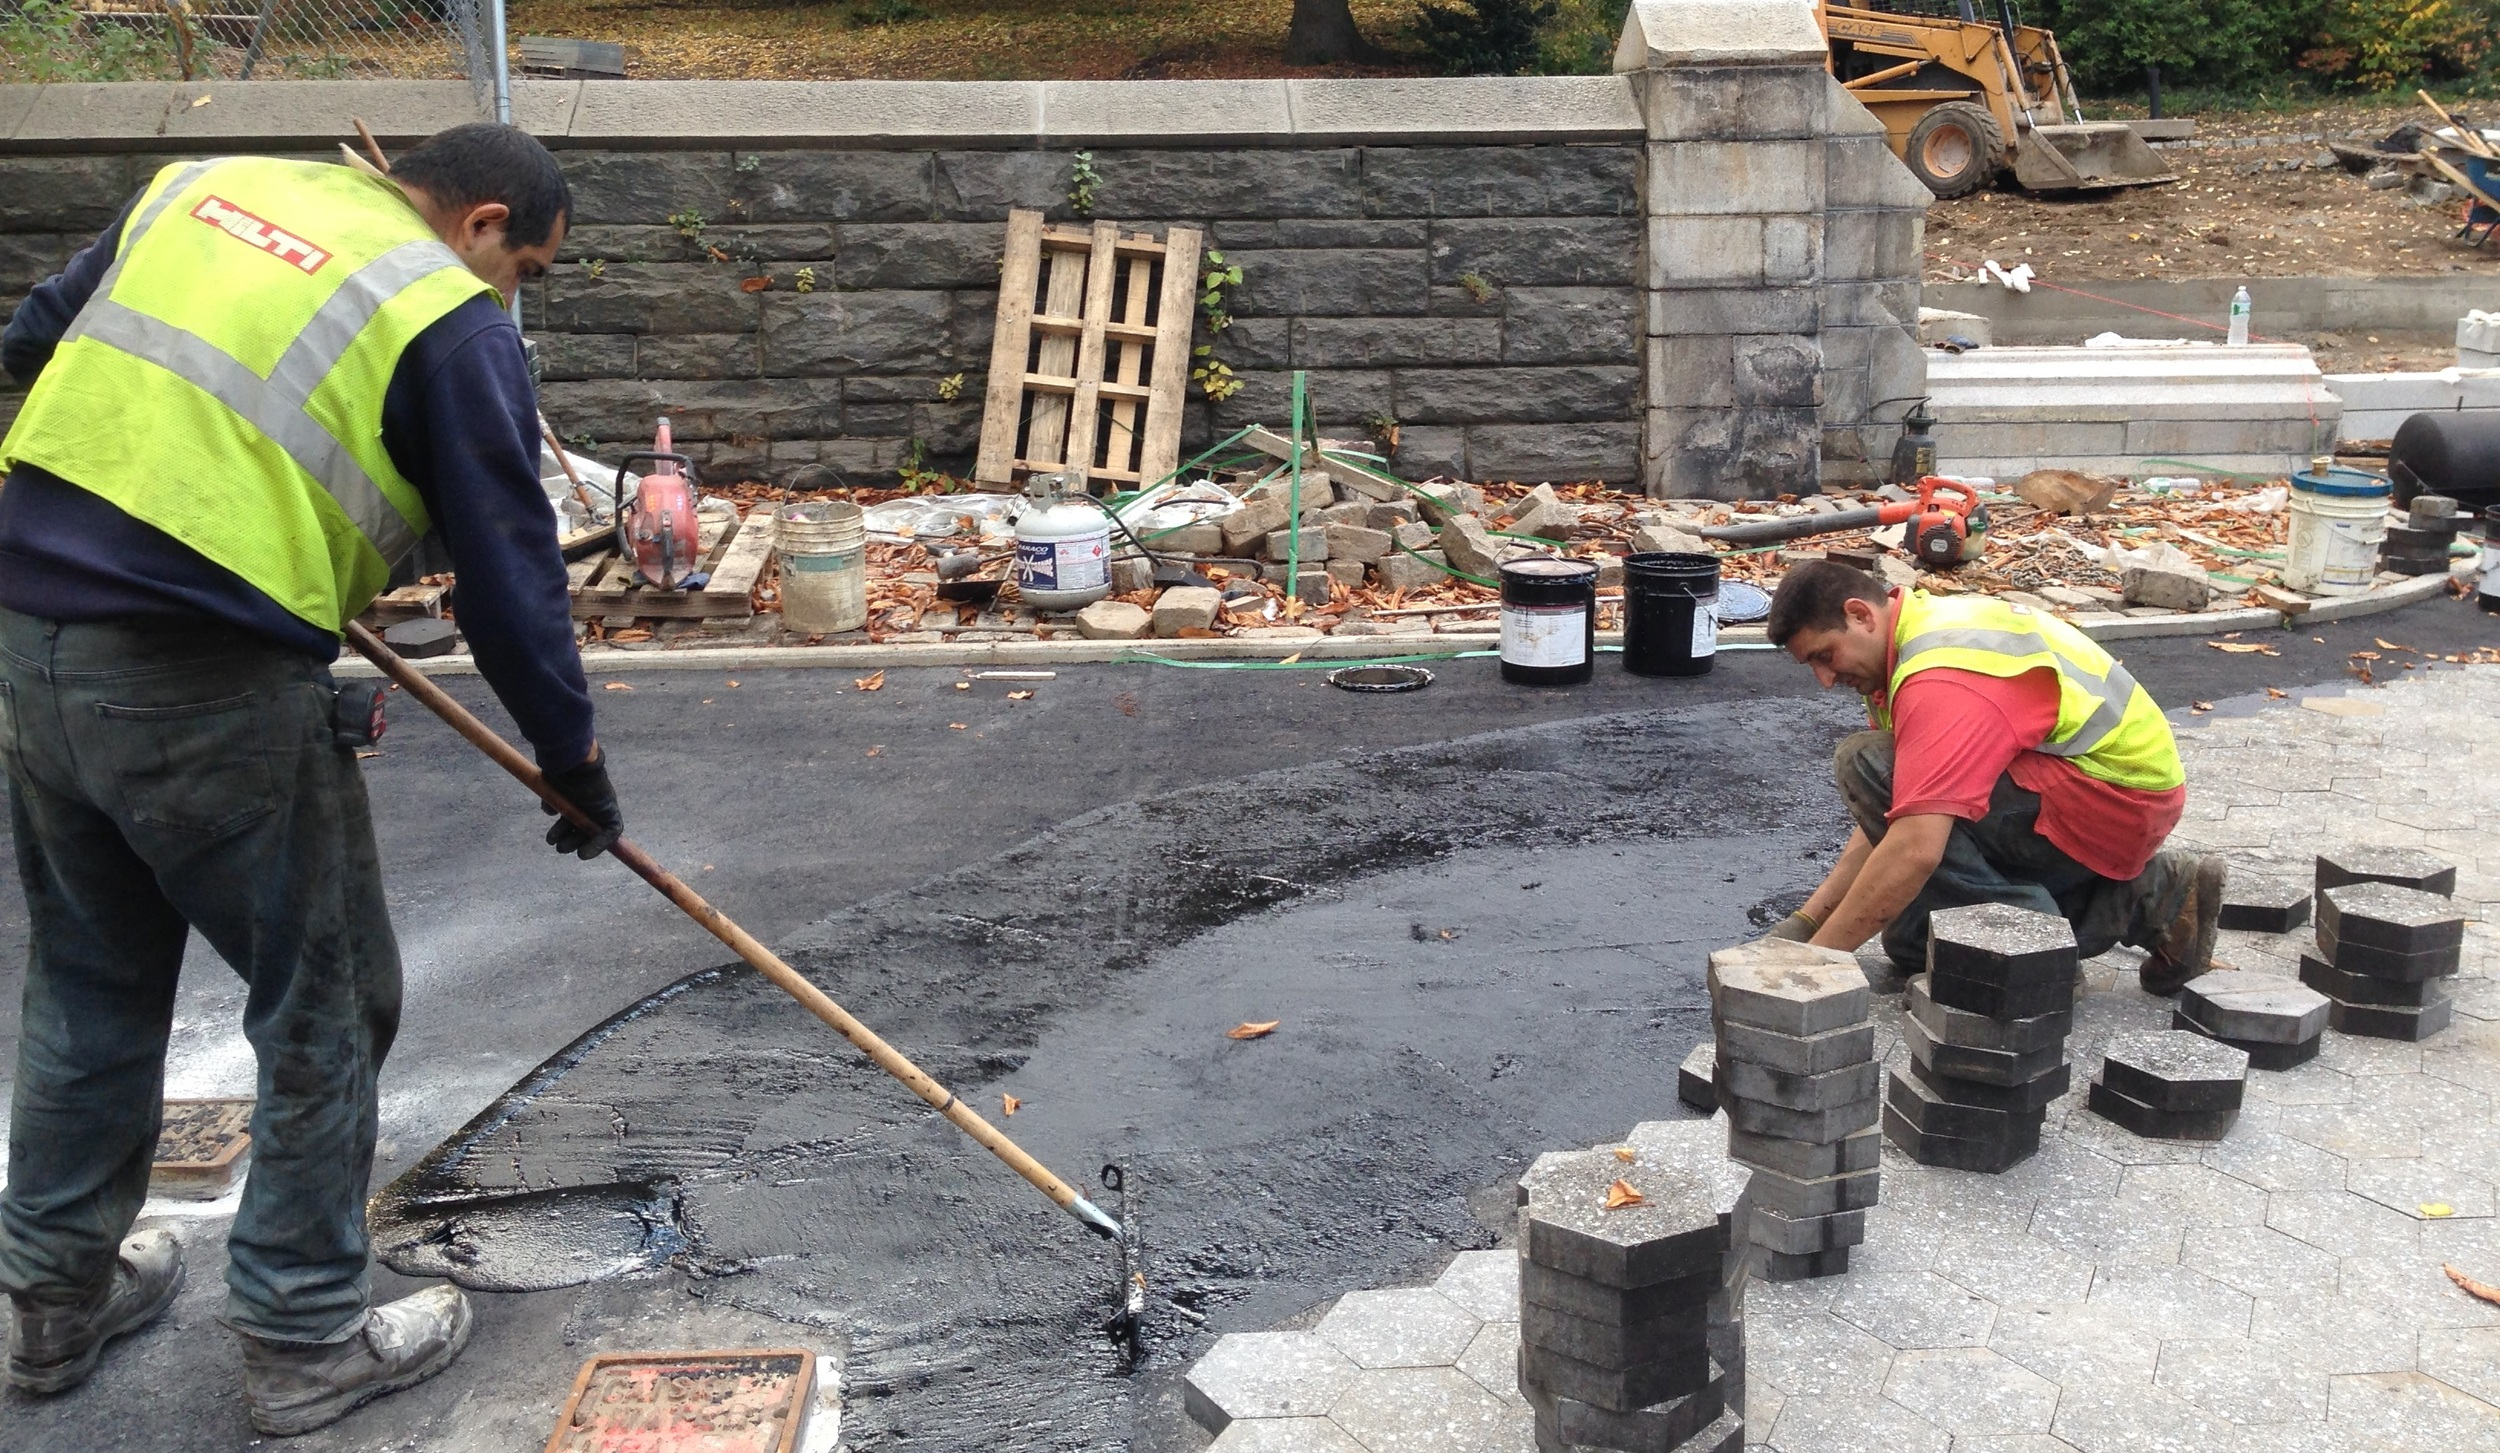 Construction workers laying down hexagonal pavers at the Willoughby entrance way.